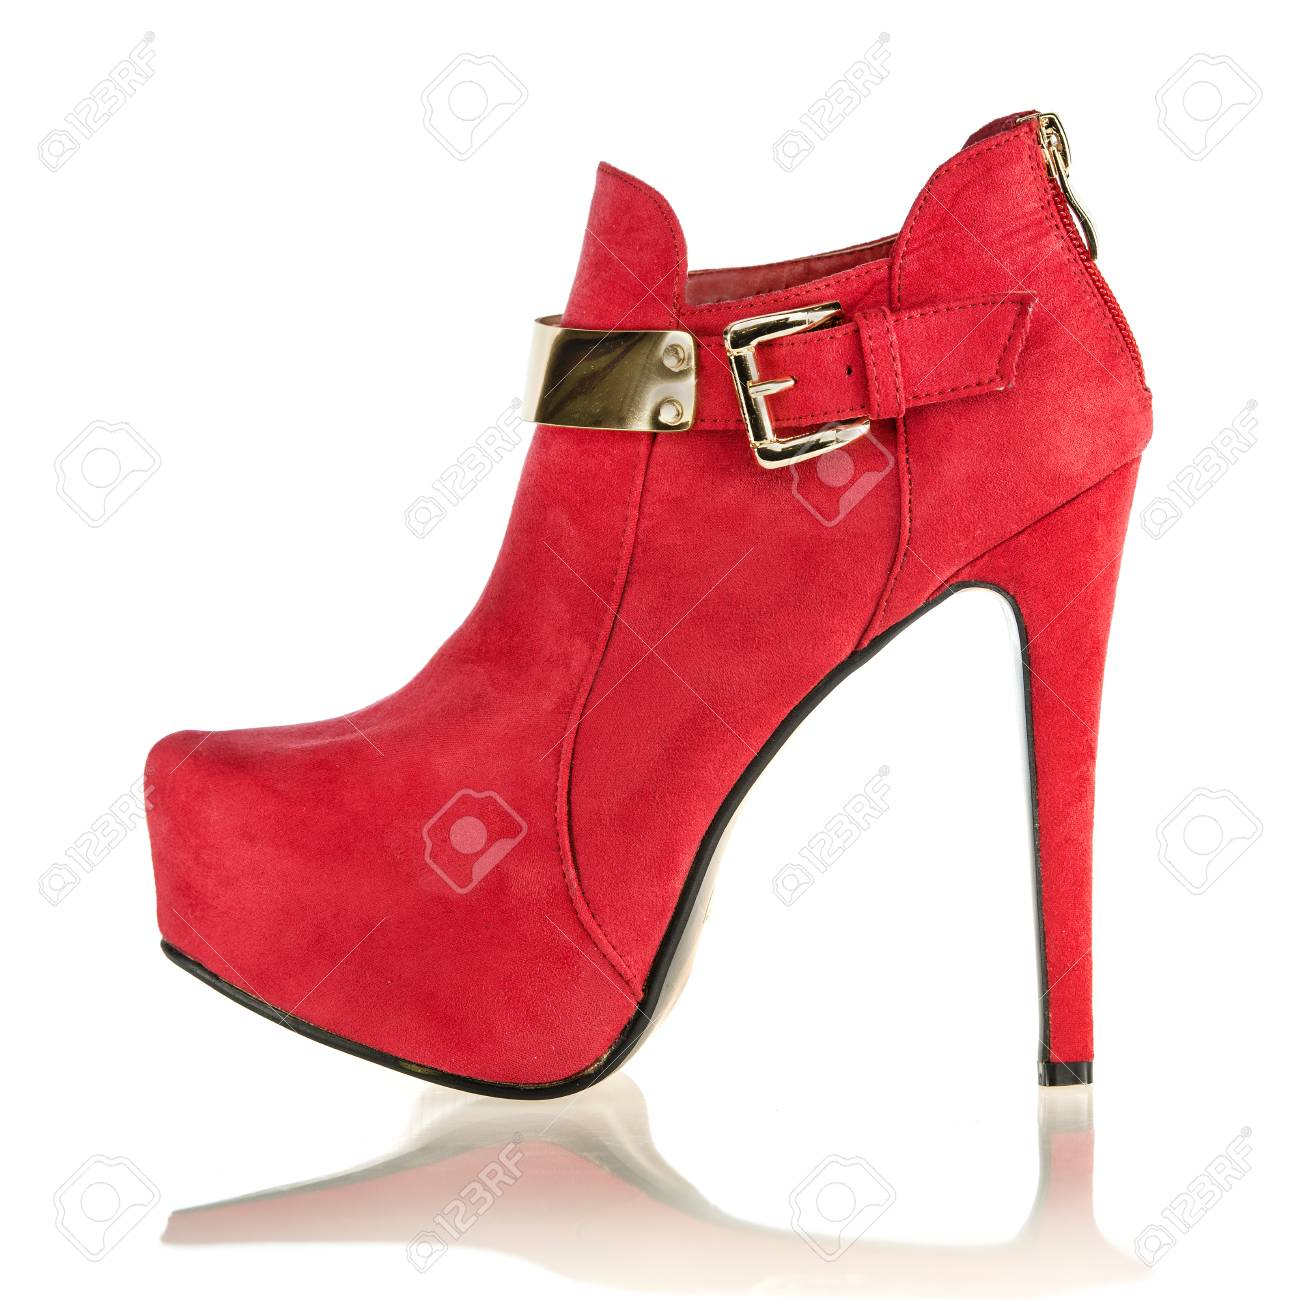 buy online d707a 24ff5 fashionable stiletto high heels ankle boots in red suede with..